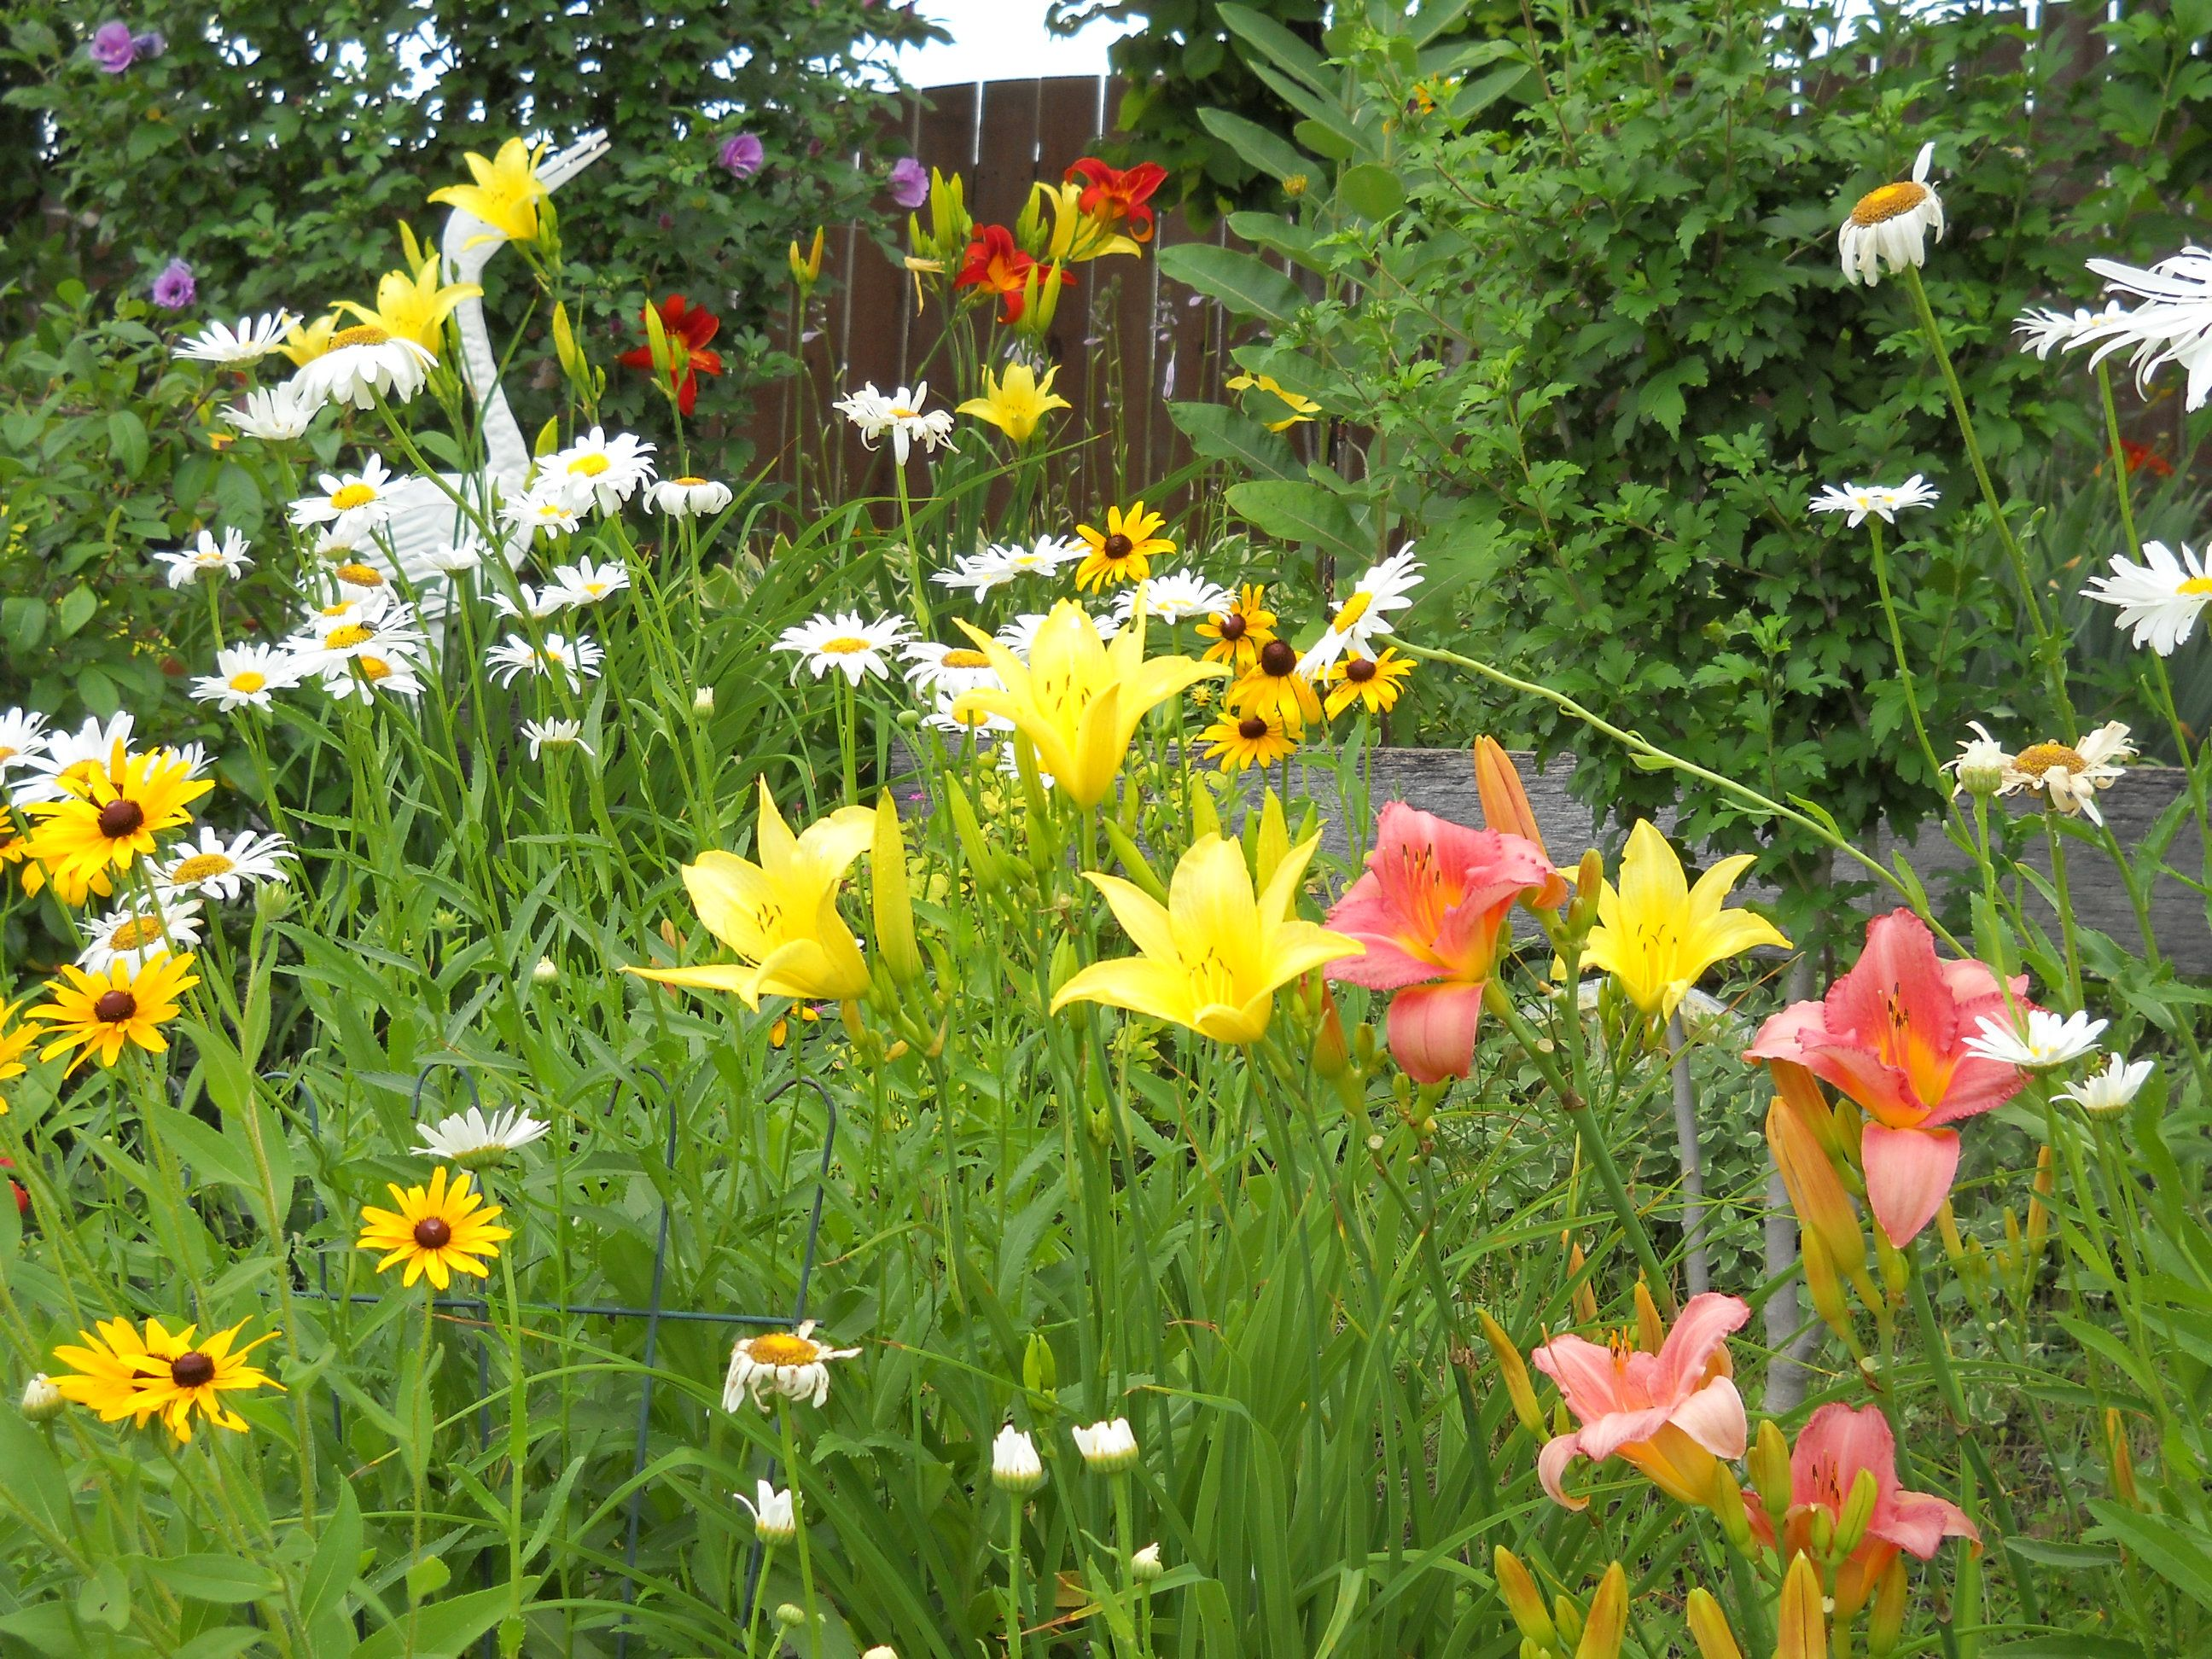 Daylily's - So many colors to choose from, and so easy to grow.